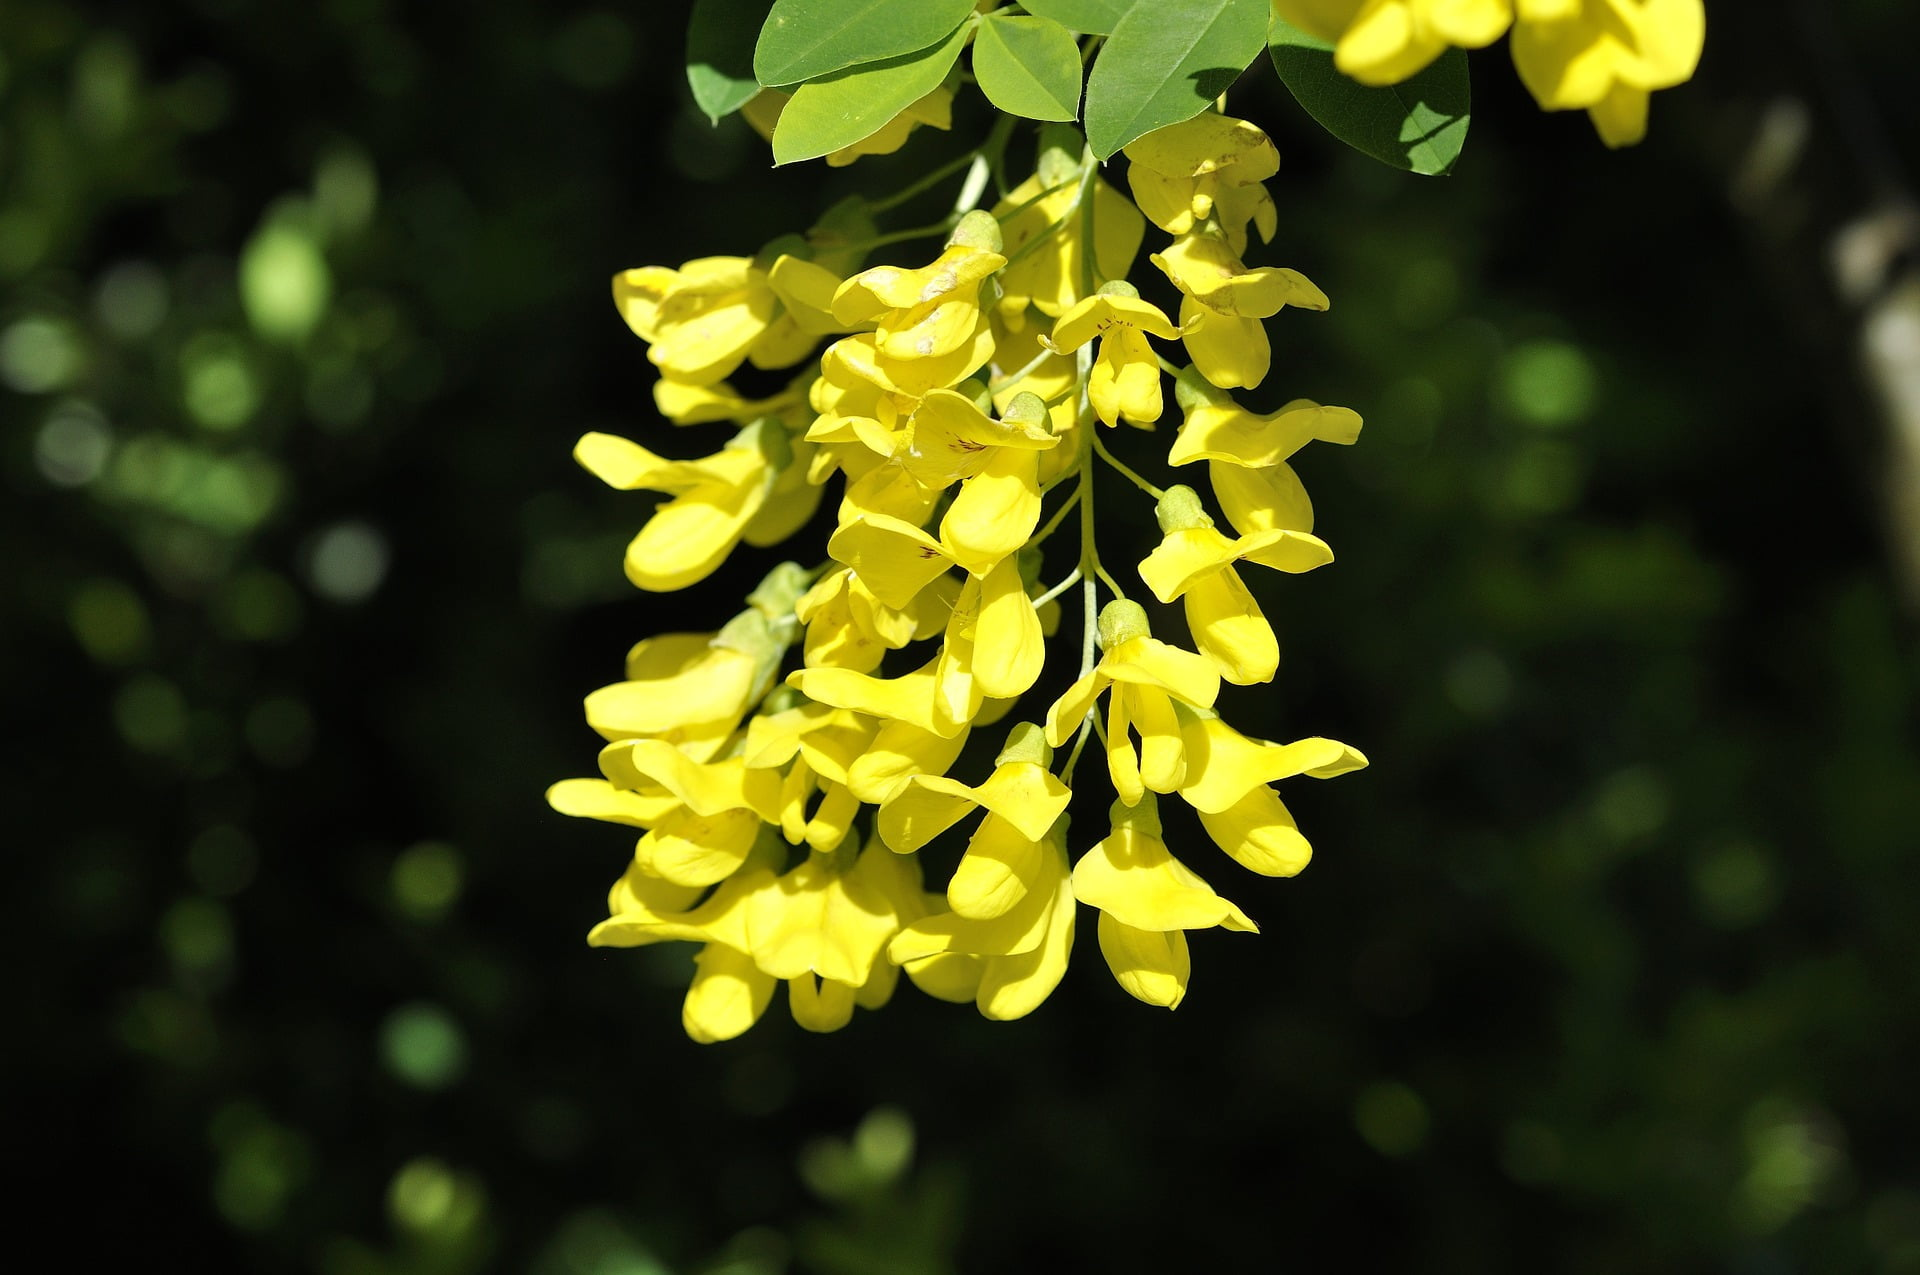 Flowers from the Laburnum anagyroides, the common laburnum, golden chain or golden rain tree.